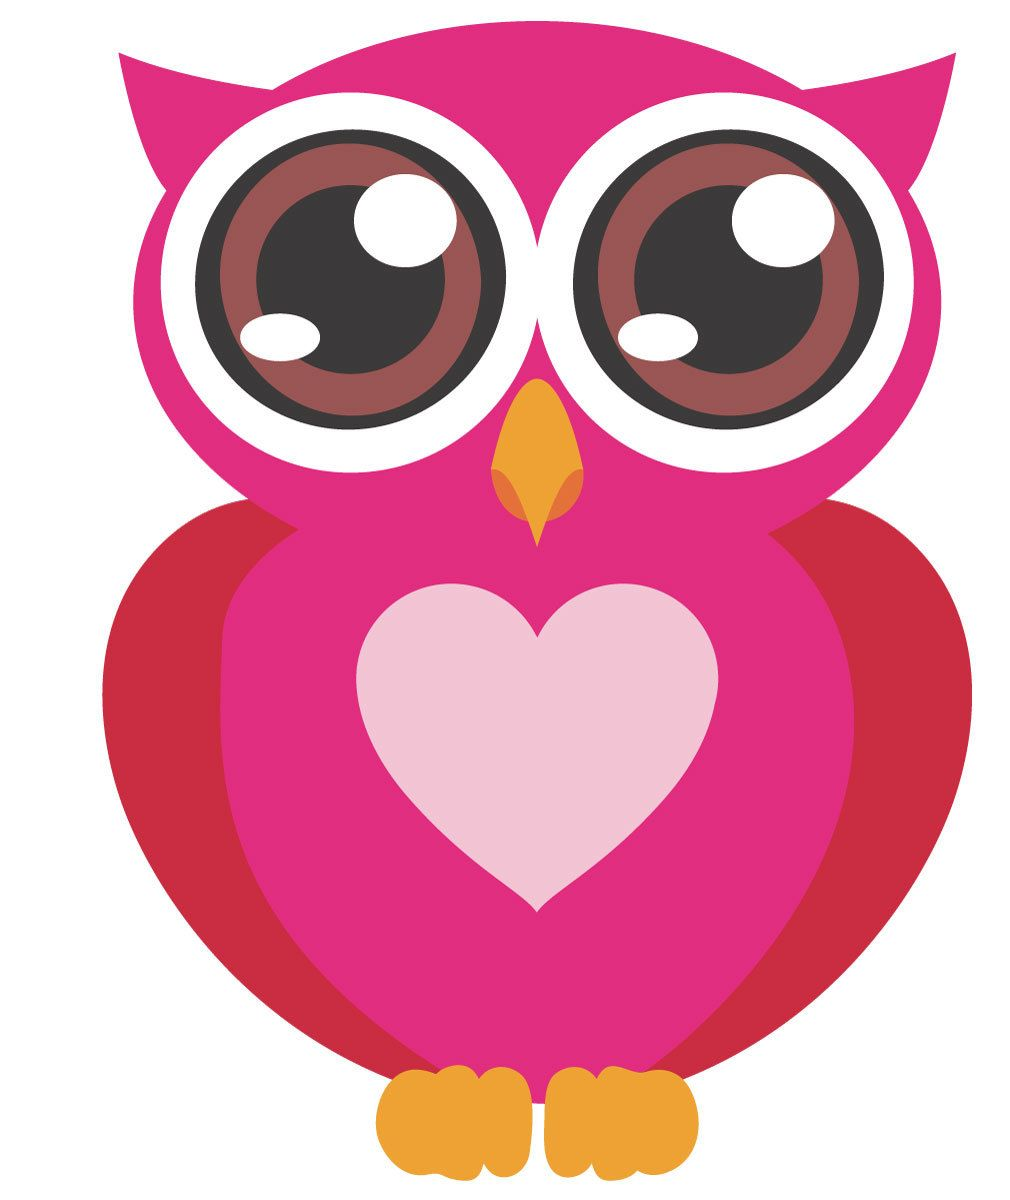 Owl baby shower decorations blue bathroom design amp decor owl - Pink Owl With Big Eyes Wall Stickers Totally Movable Owl Clip Artbaby Shower